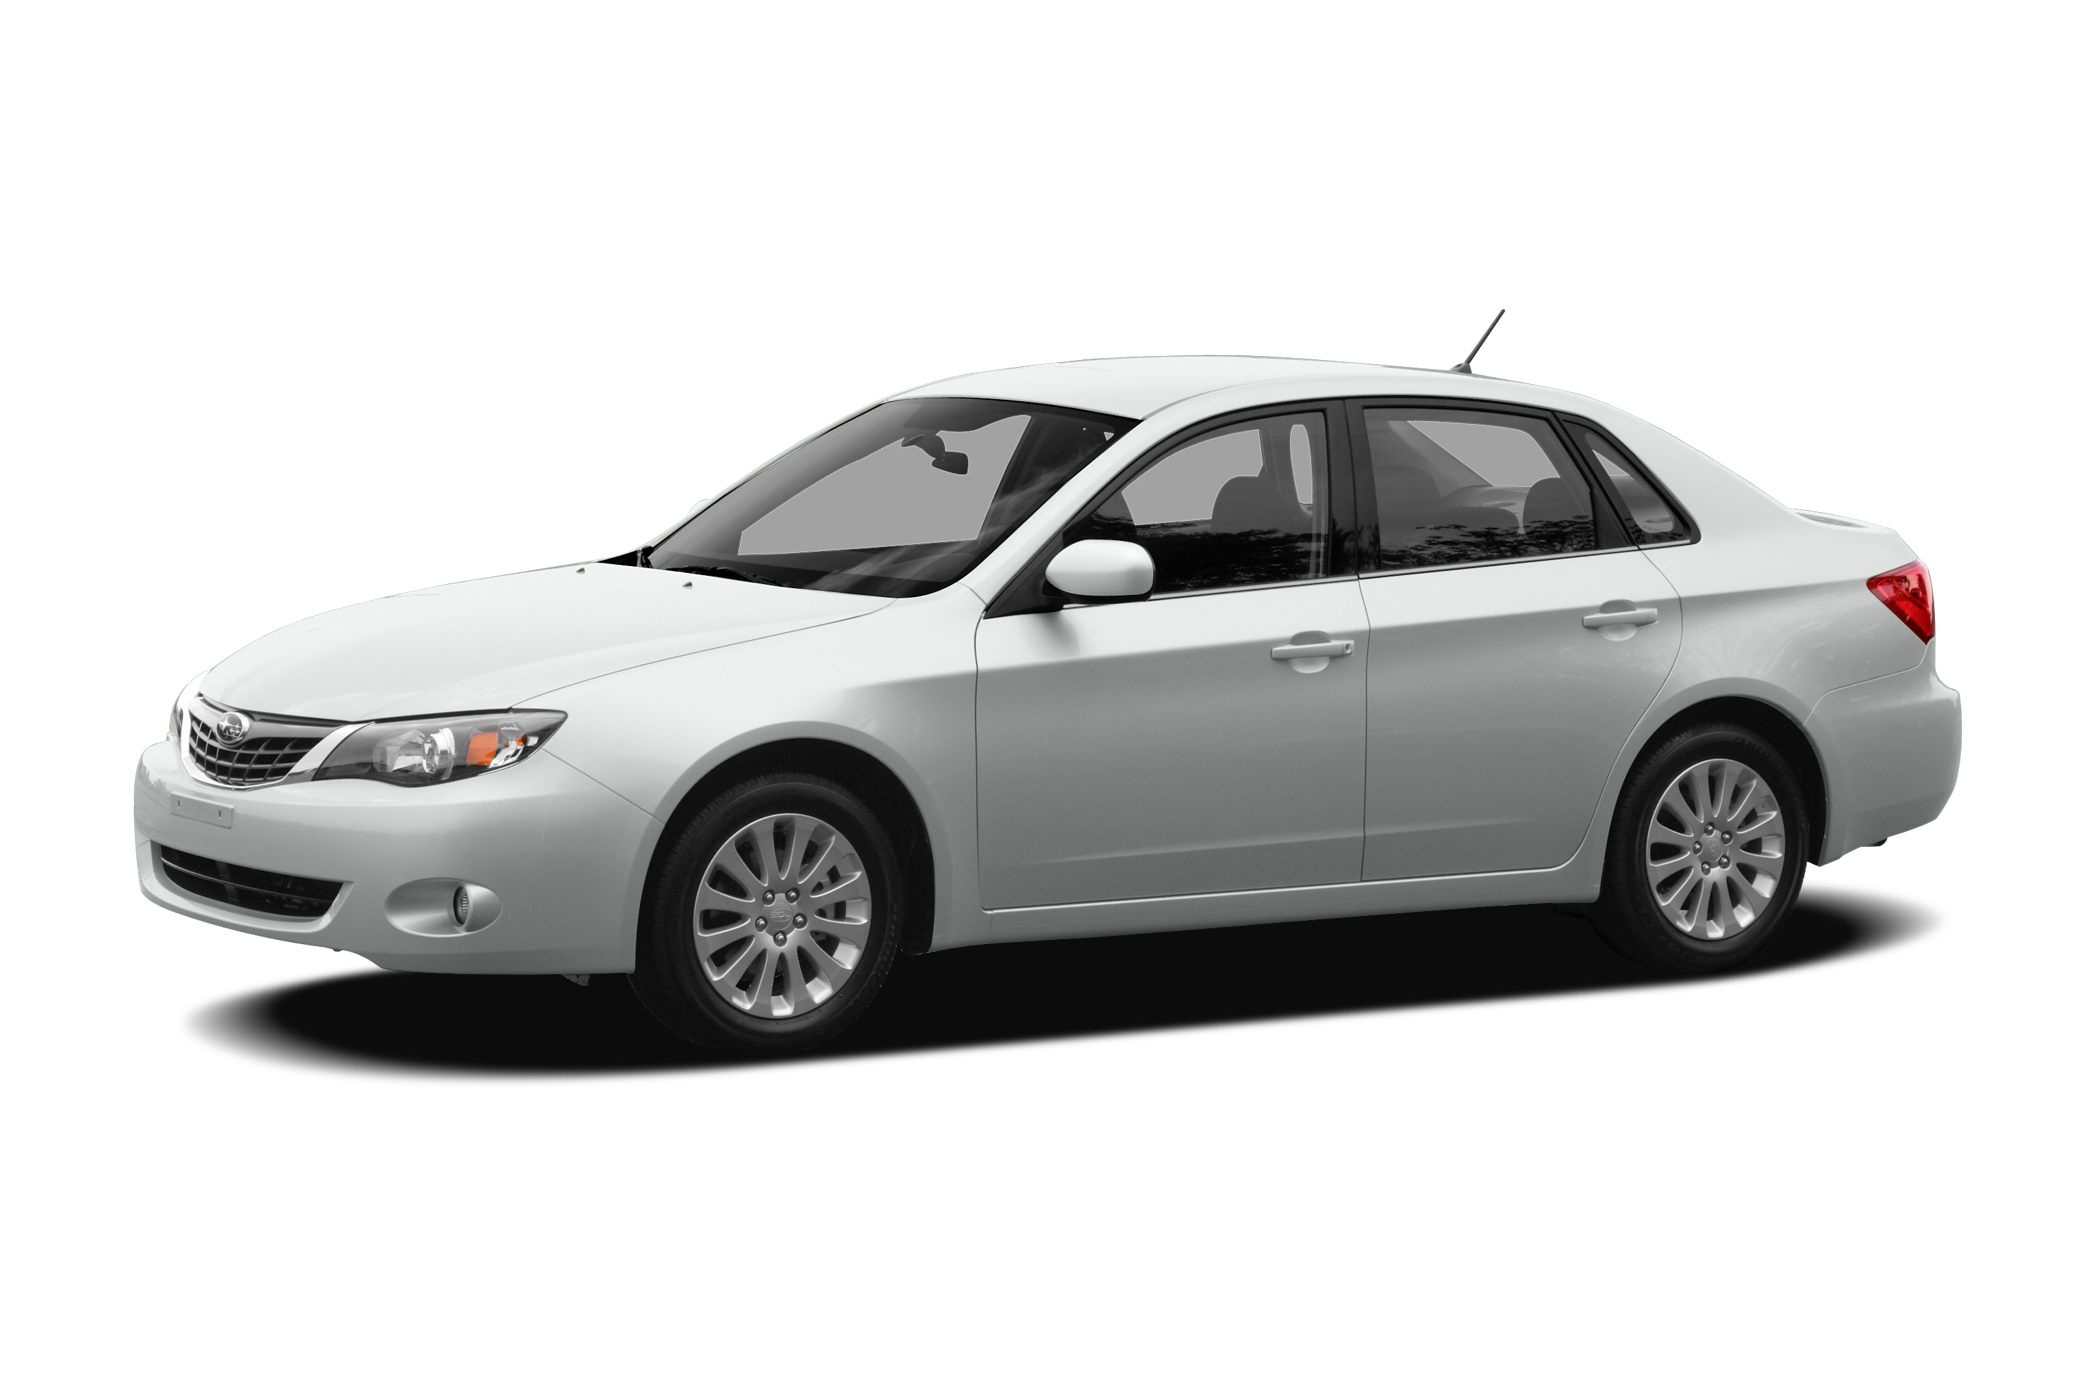 2009 Subaru Impreza 2.5 I Hatchback for sale in Raleigh for $0 with 113,156 miles